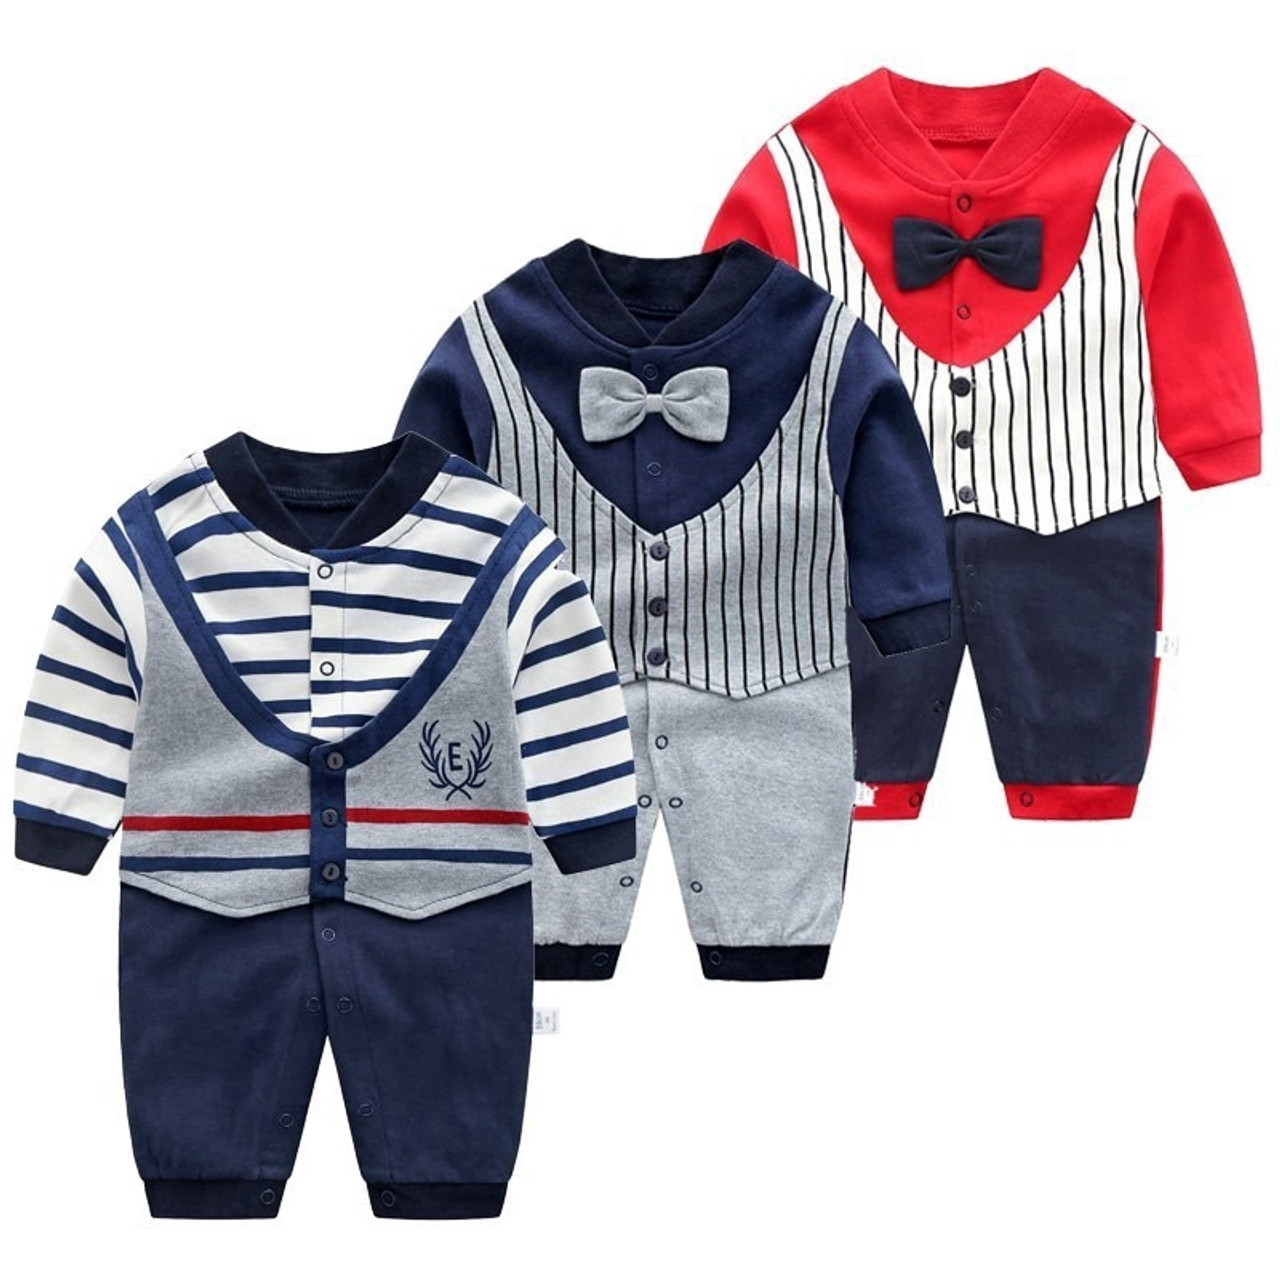 1f0afe8d2 Baby Jumpsuit Autumn Clothing Newborn Cotton Clothes Infant Long ...